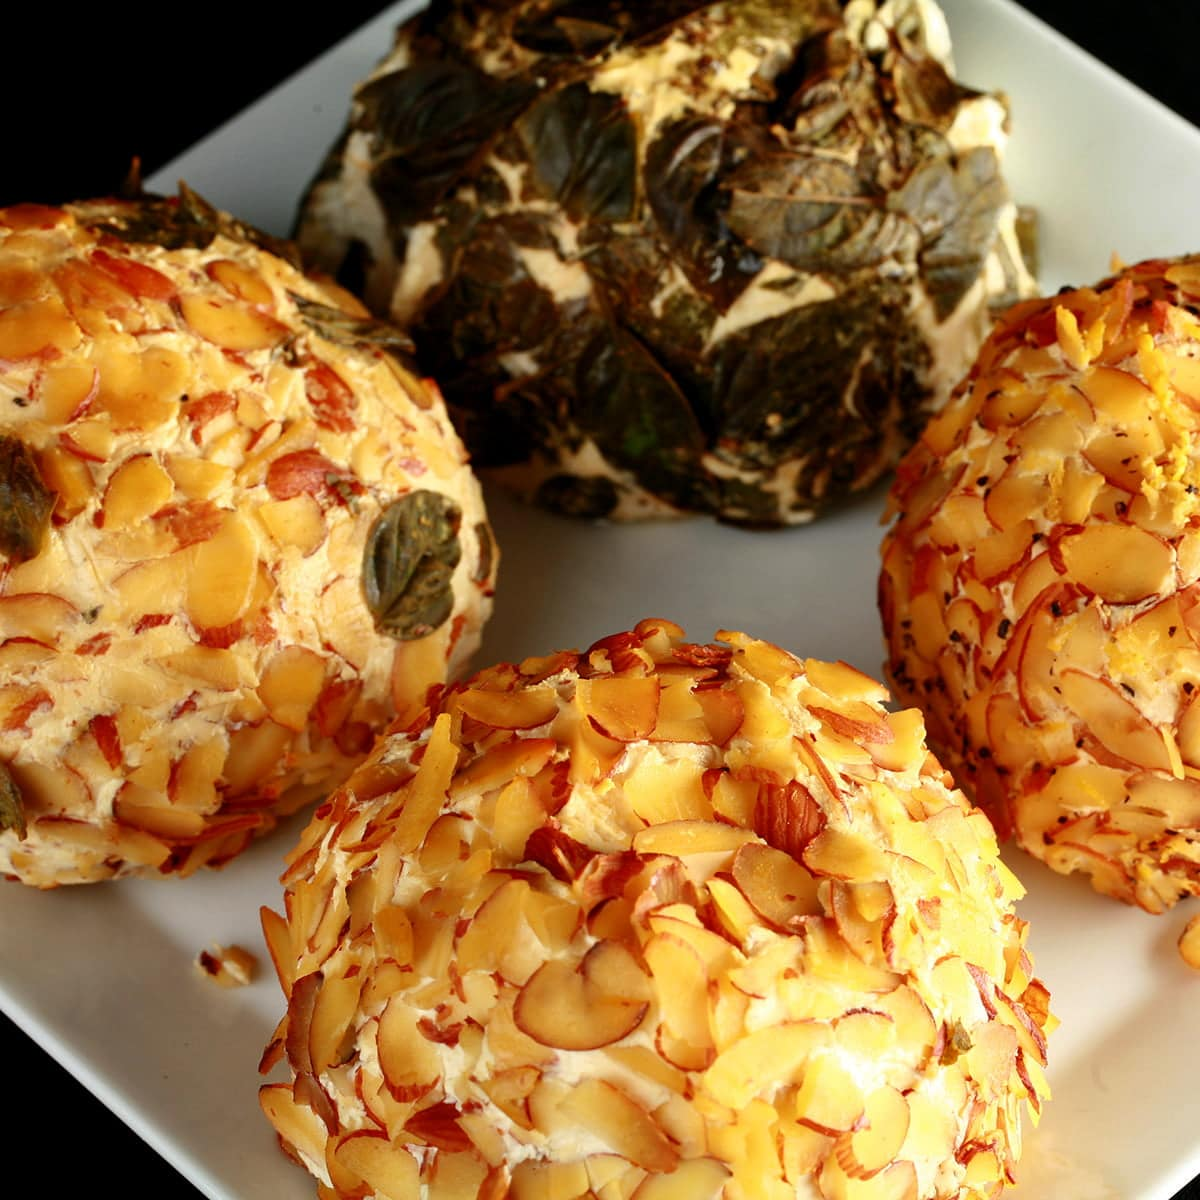 4 smoked cheese balls - with various coatings - are arranged on a plate.